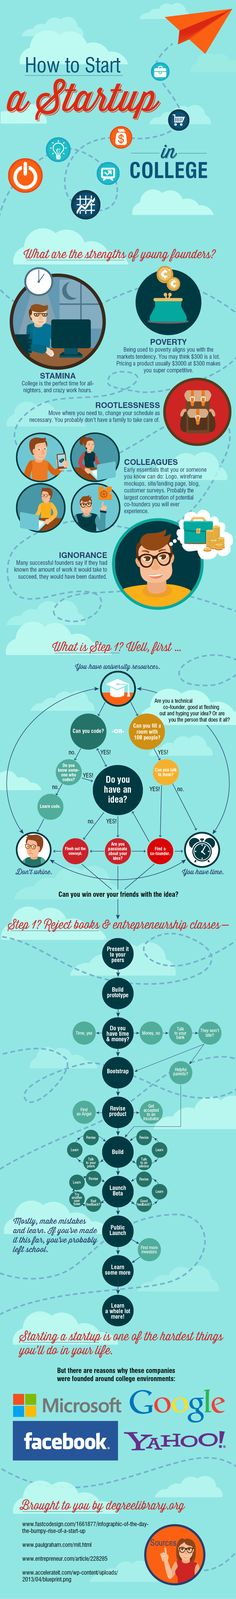 How to Start a Startup in College   #Infographic #Startup #College